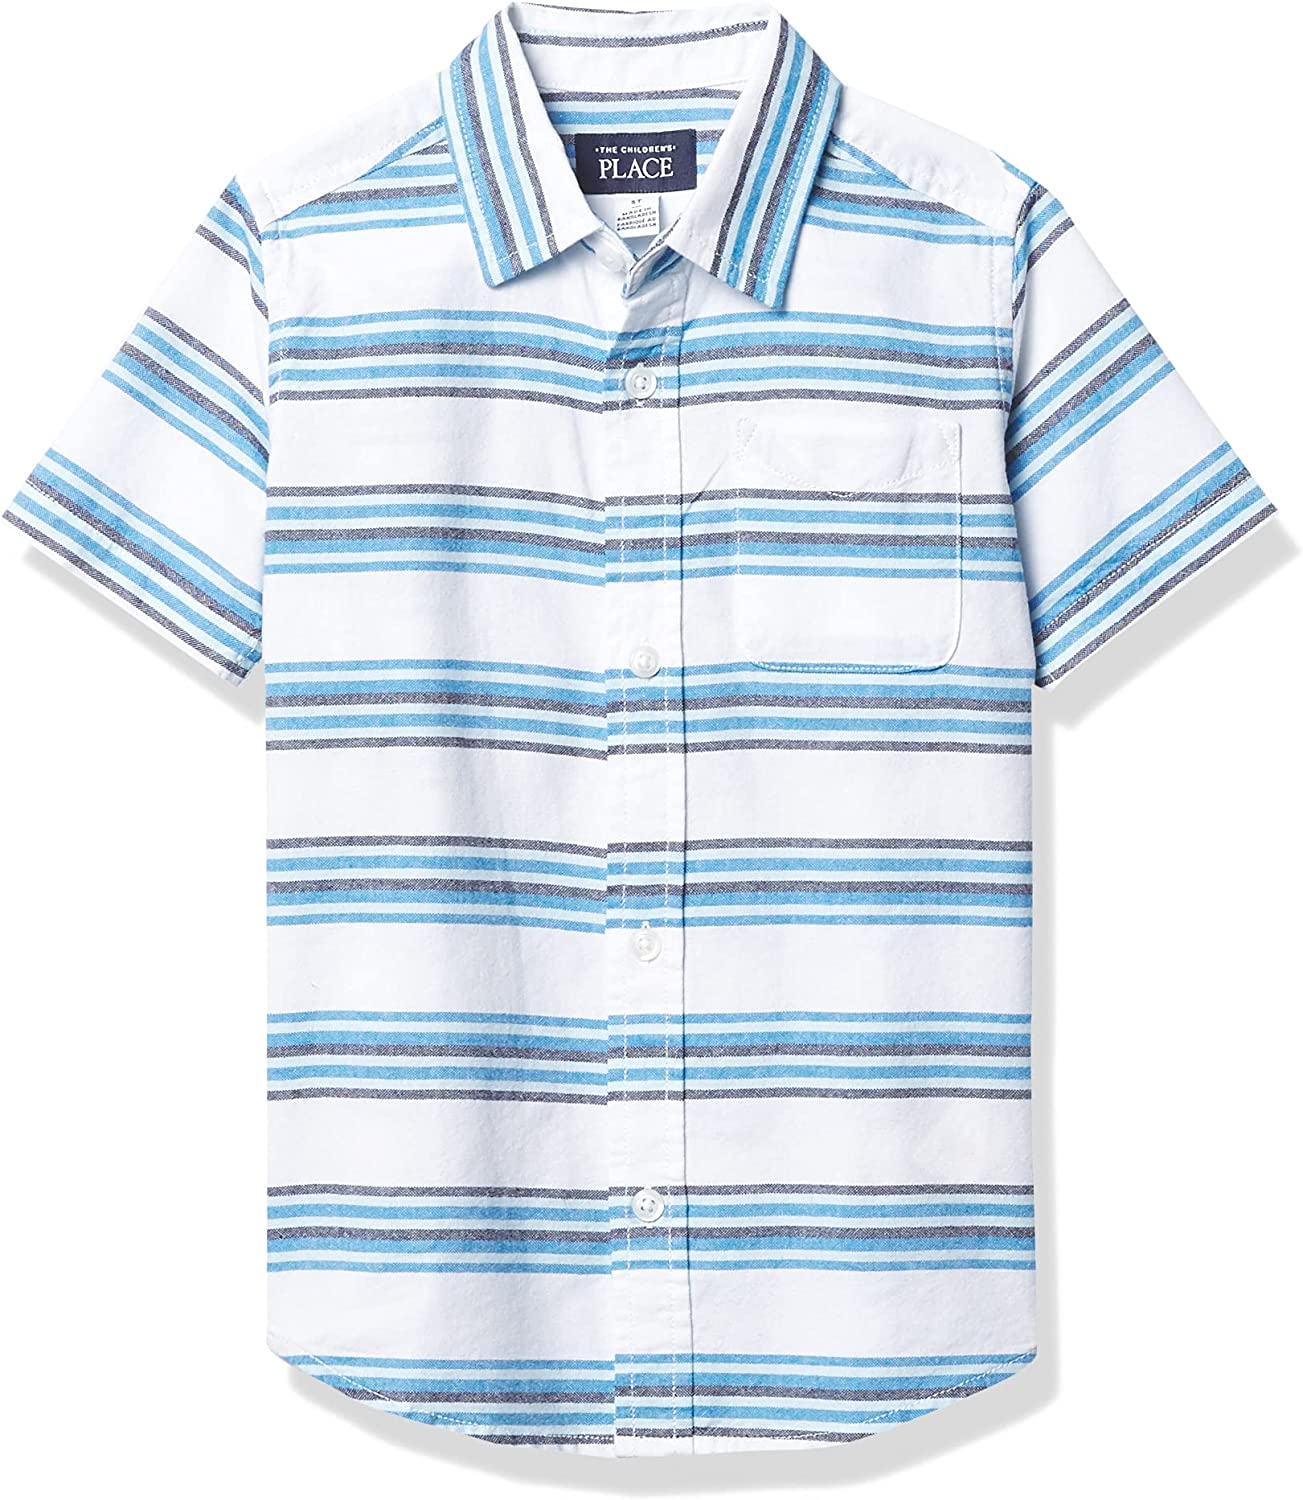 The Children's Place Baby Toddler Boy Short Sleeve Striped Oxford Button Down Shirt